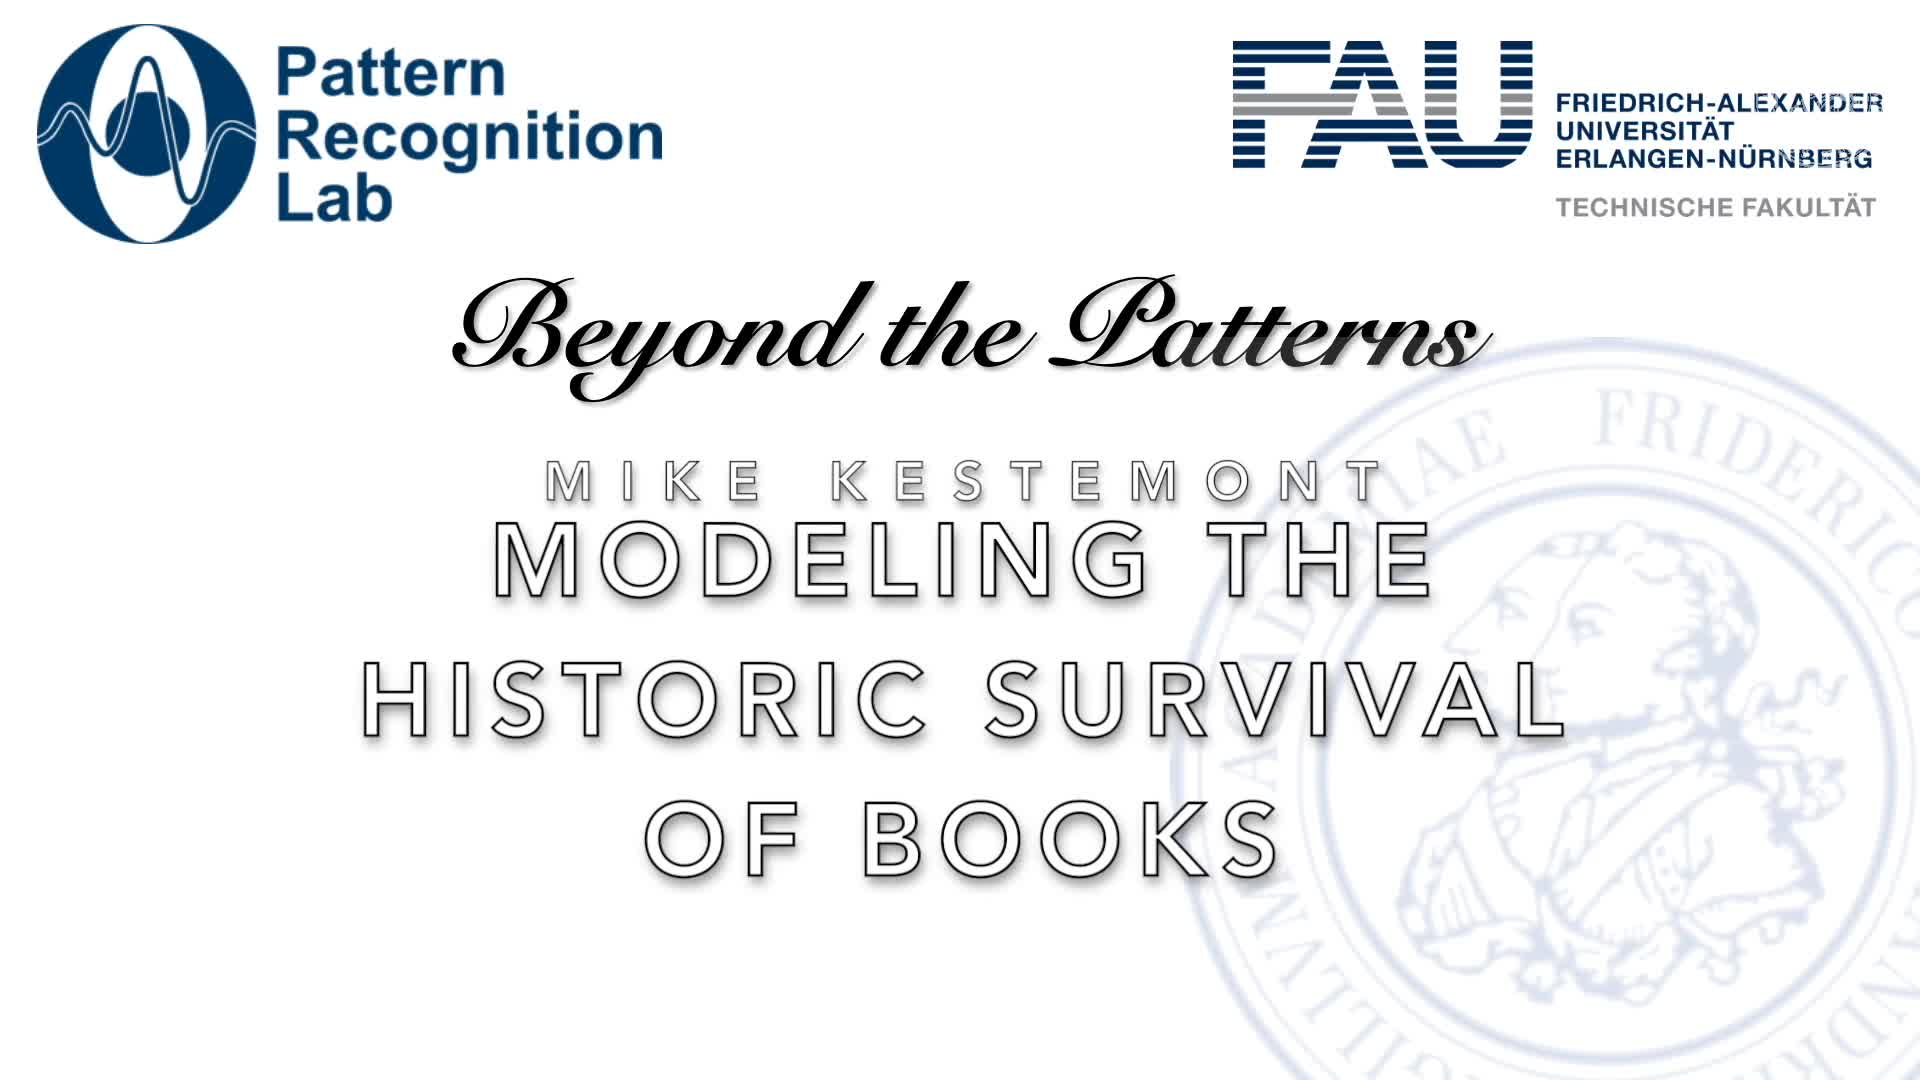 Beyond the Patterns - Dr. Mike Kestemont - Ecology and Cultural Heritage: Modelling the Historic Survival of Books and Authors with Unseen Species Models preview image